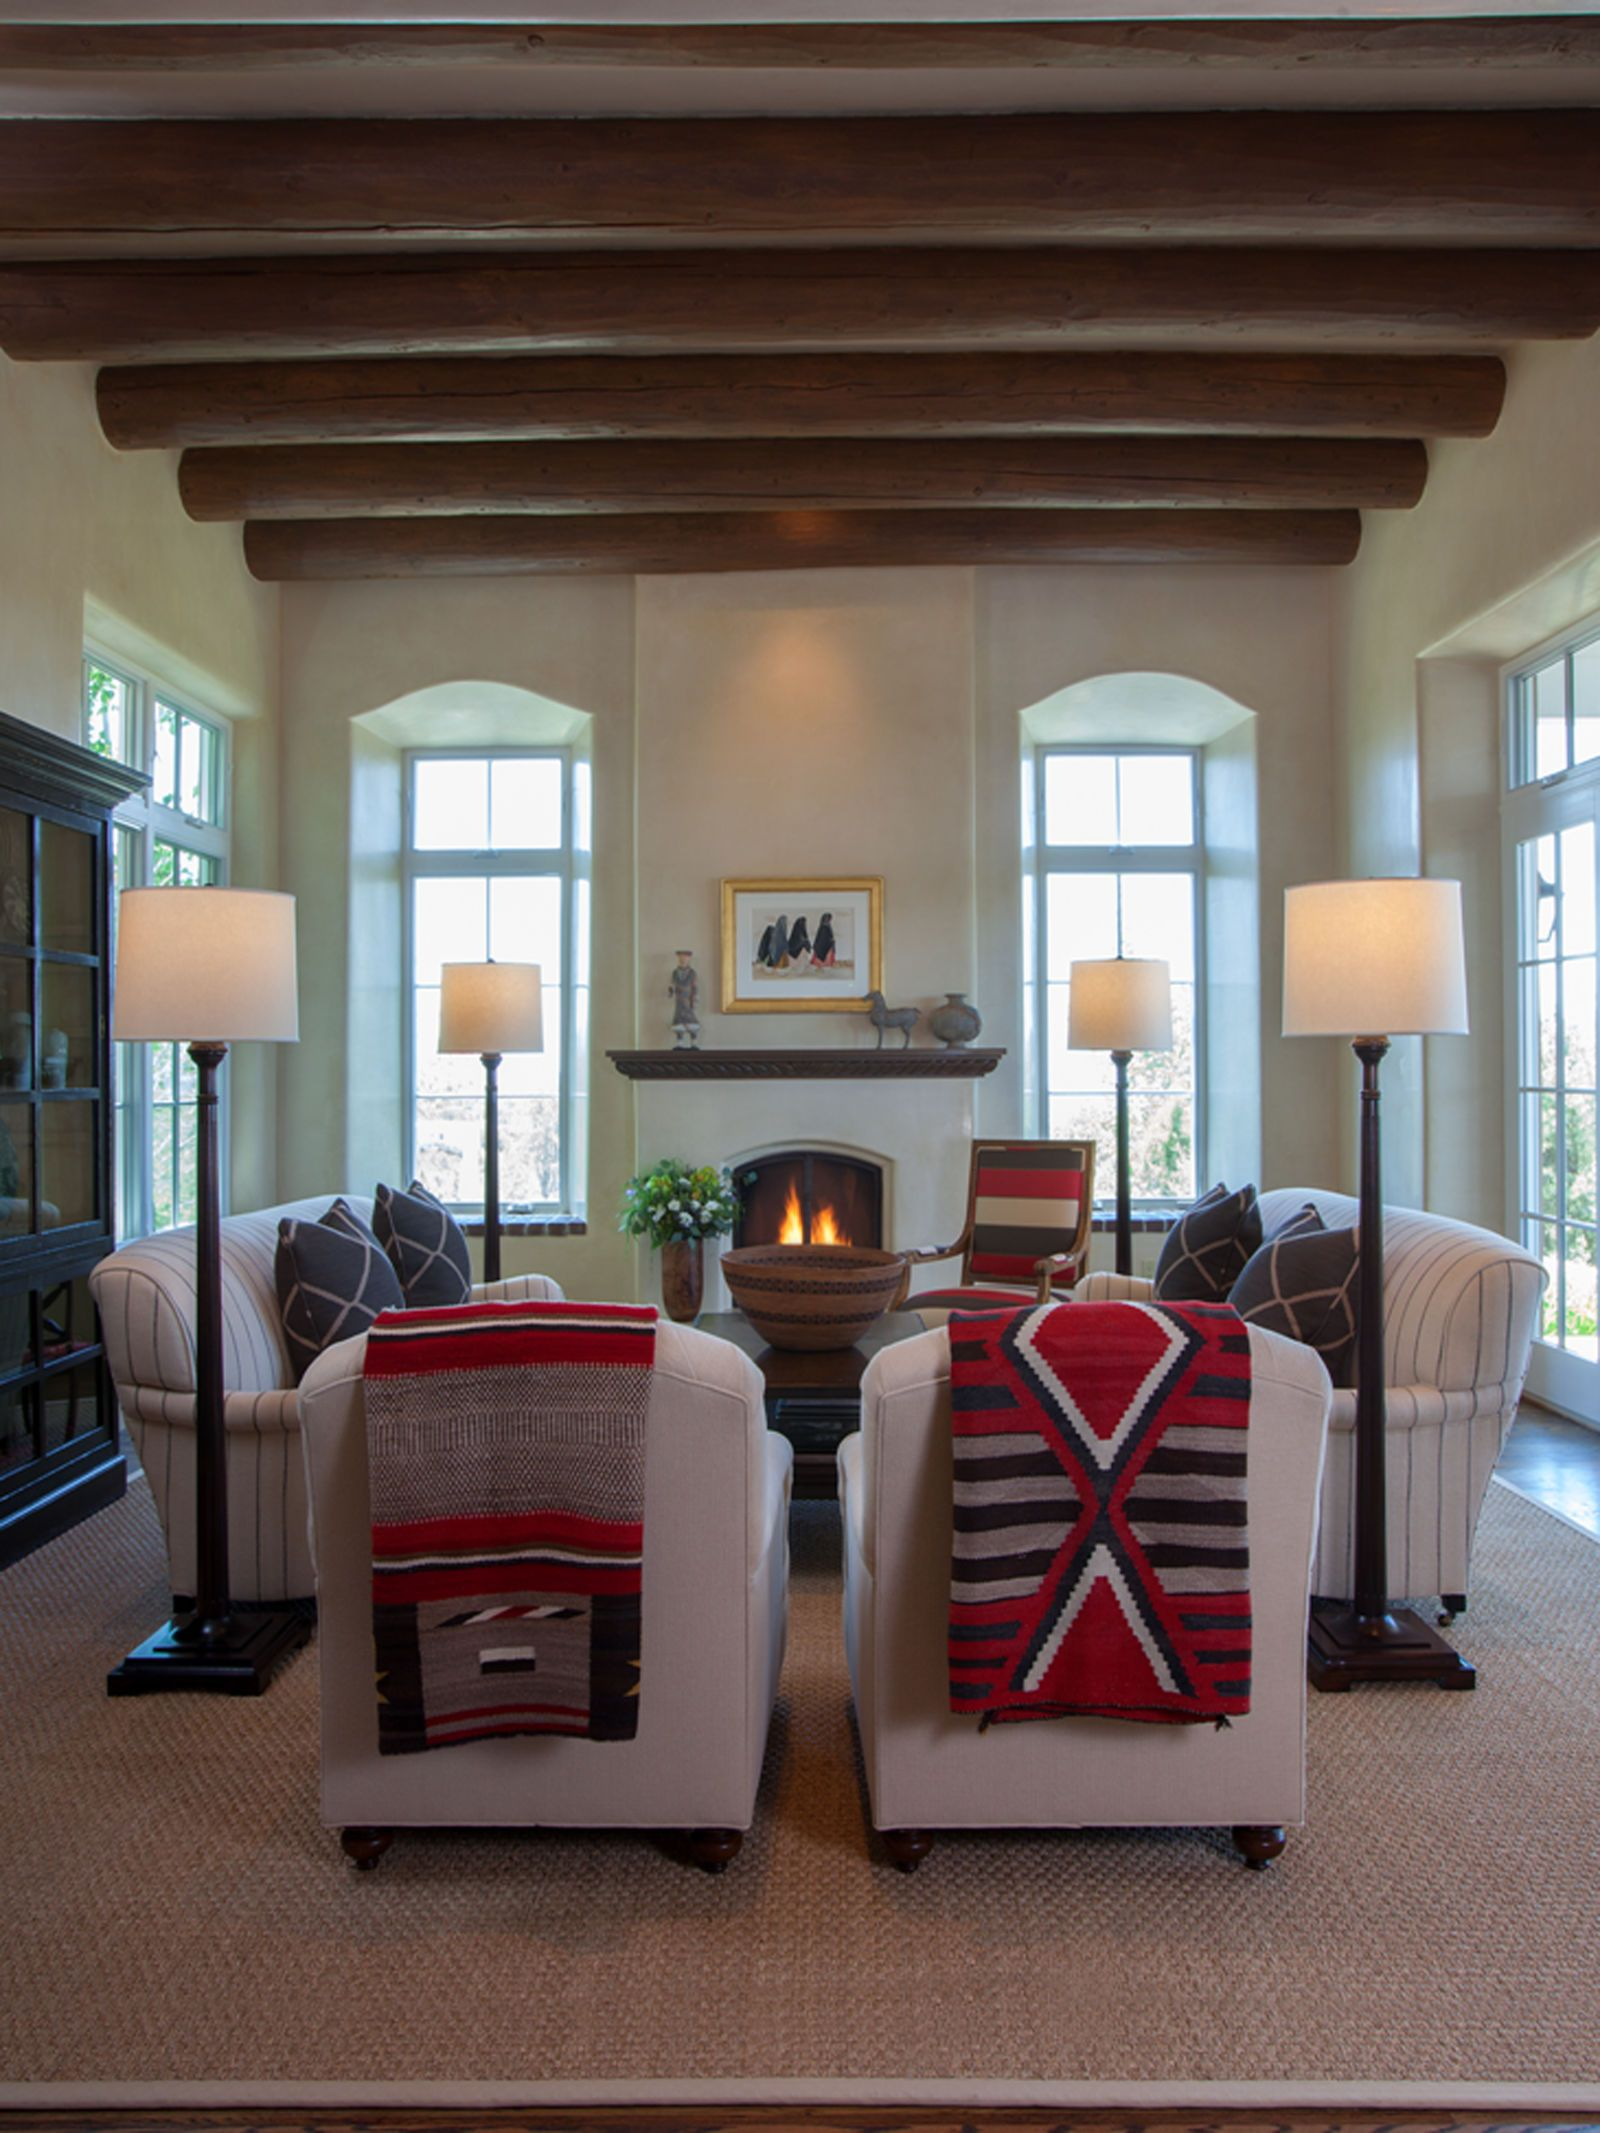 Step Inside A Stunning Adobe Home In Santa Fe New Mexico Homes Southwestern Decorating Adobe House